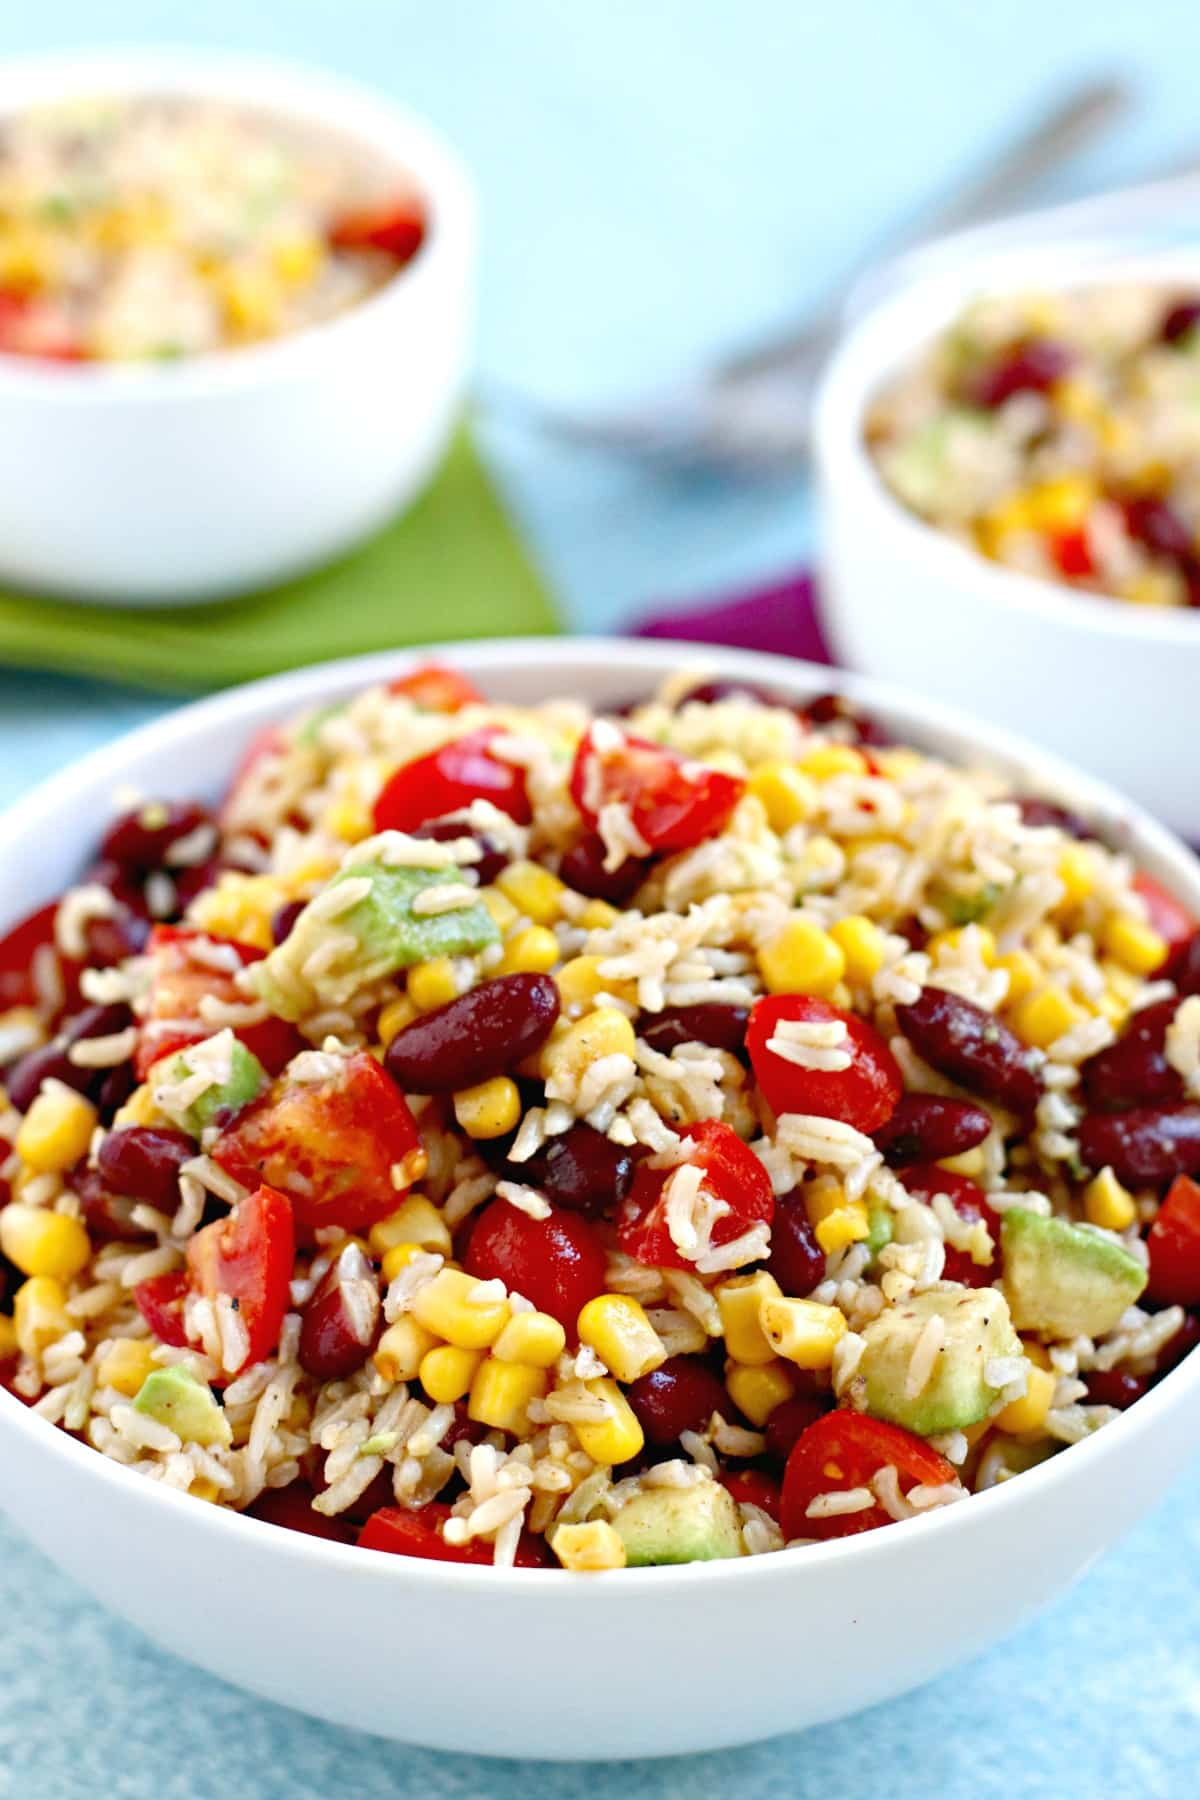 Close up of bowl of Southwestern brown rice salad with corn, kidney beans, tomatoes, and avocado